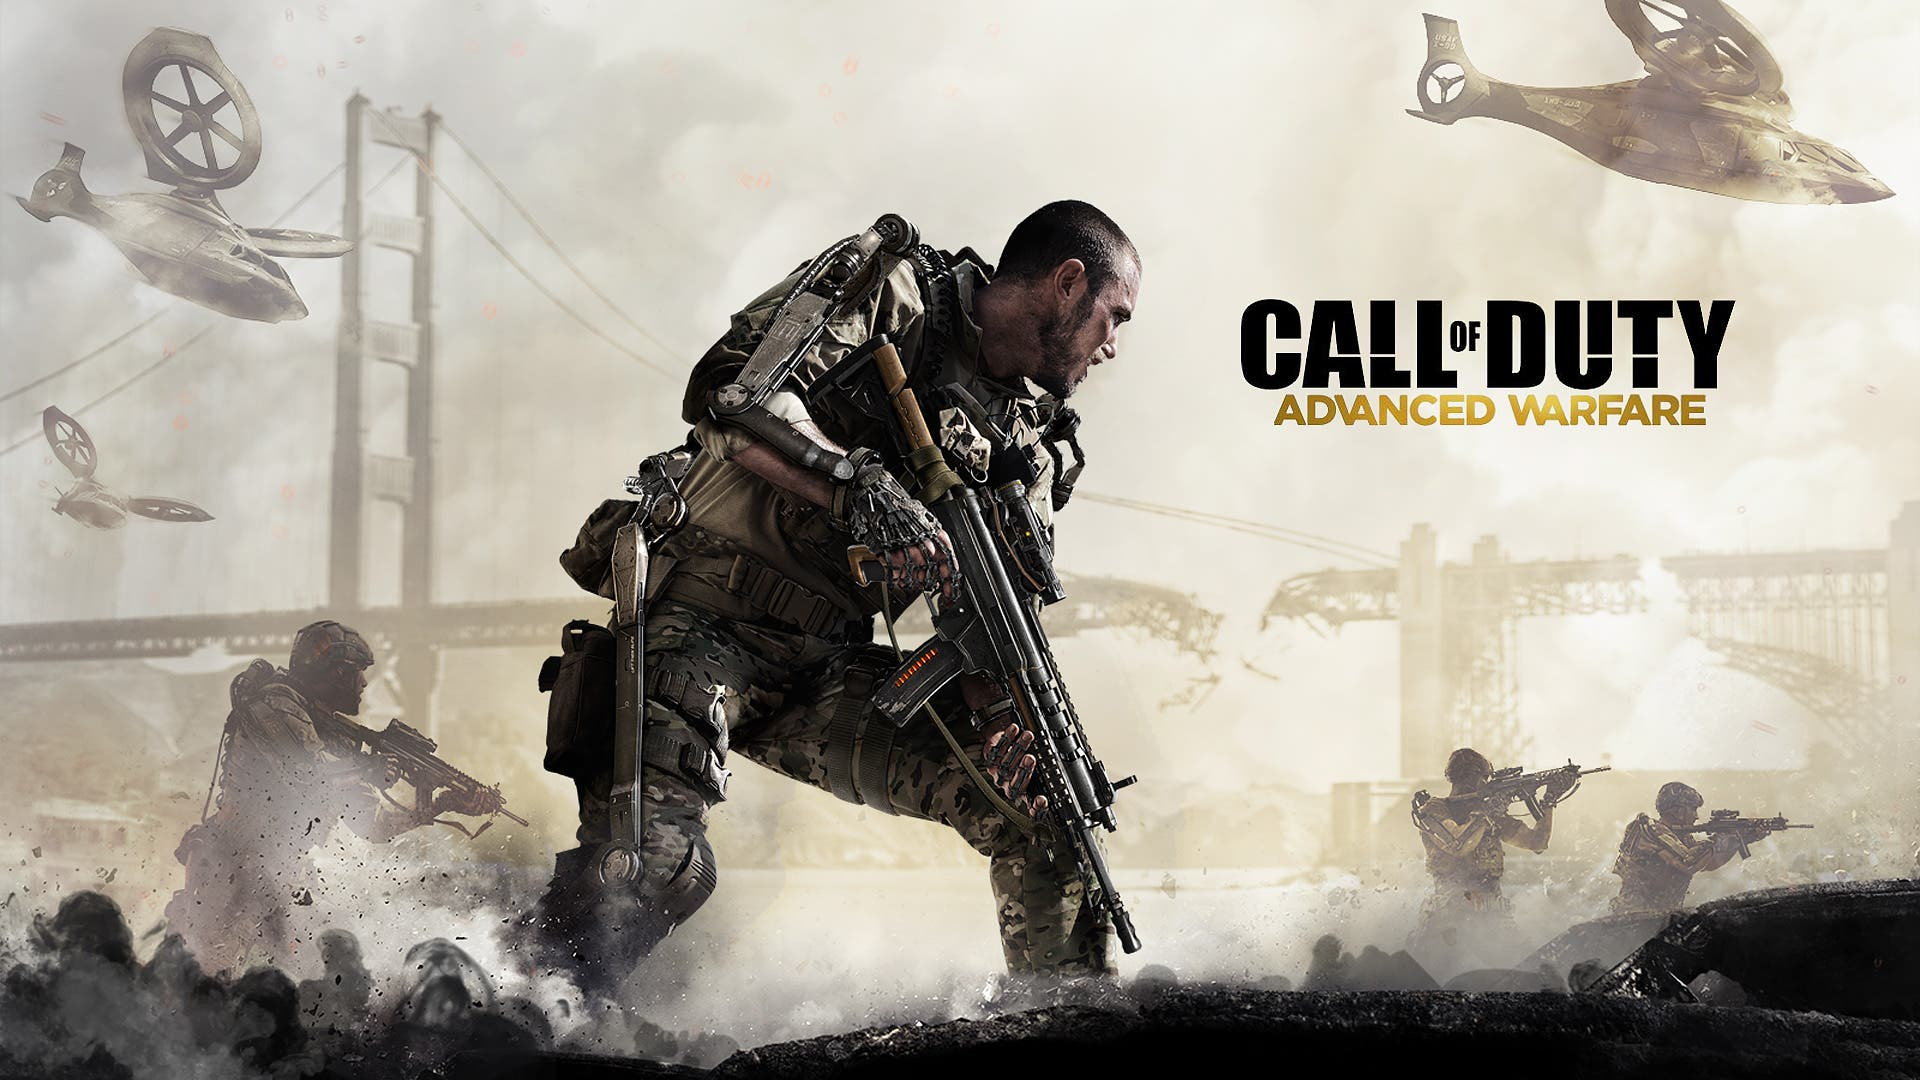 'Call of Duty: Advanced Warfare' listado en la base de datos para Wii U